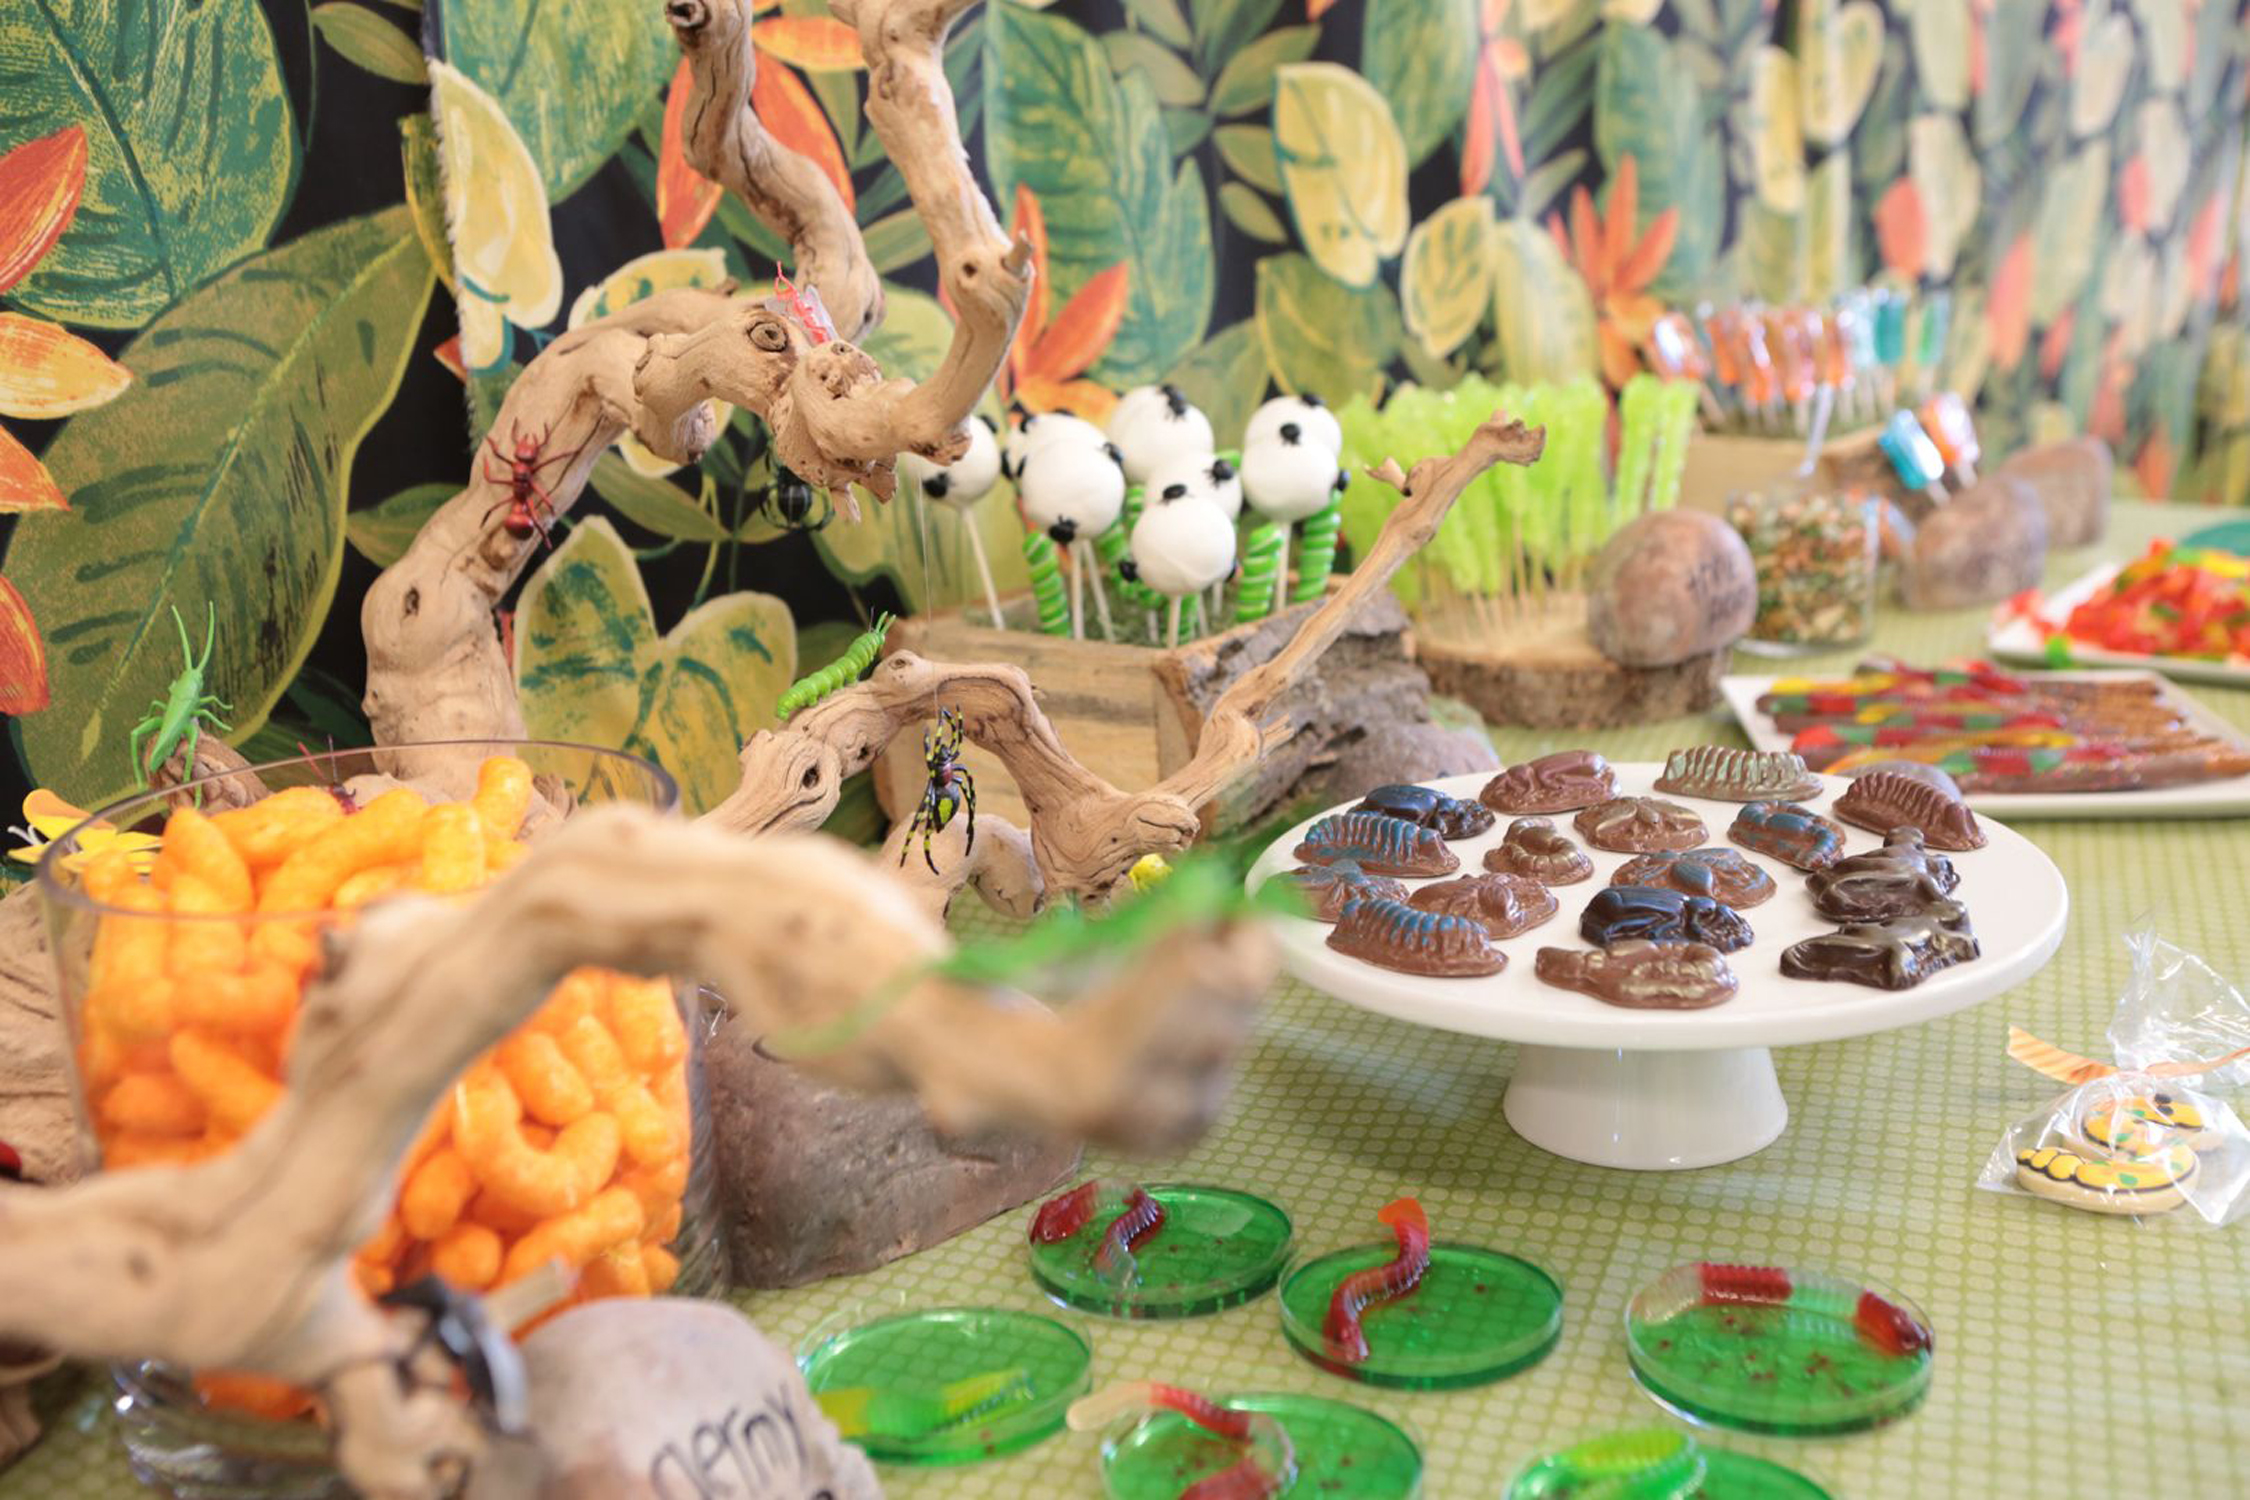 tarynco-events-bug-themed-kids-birthday-party-dessertbar-candy.jpg